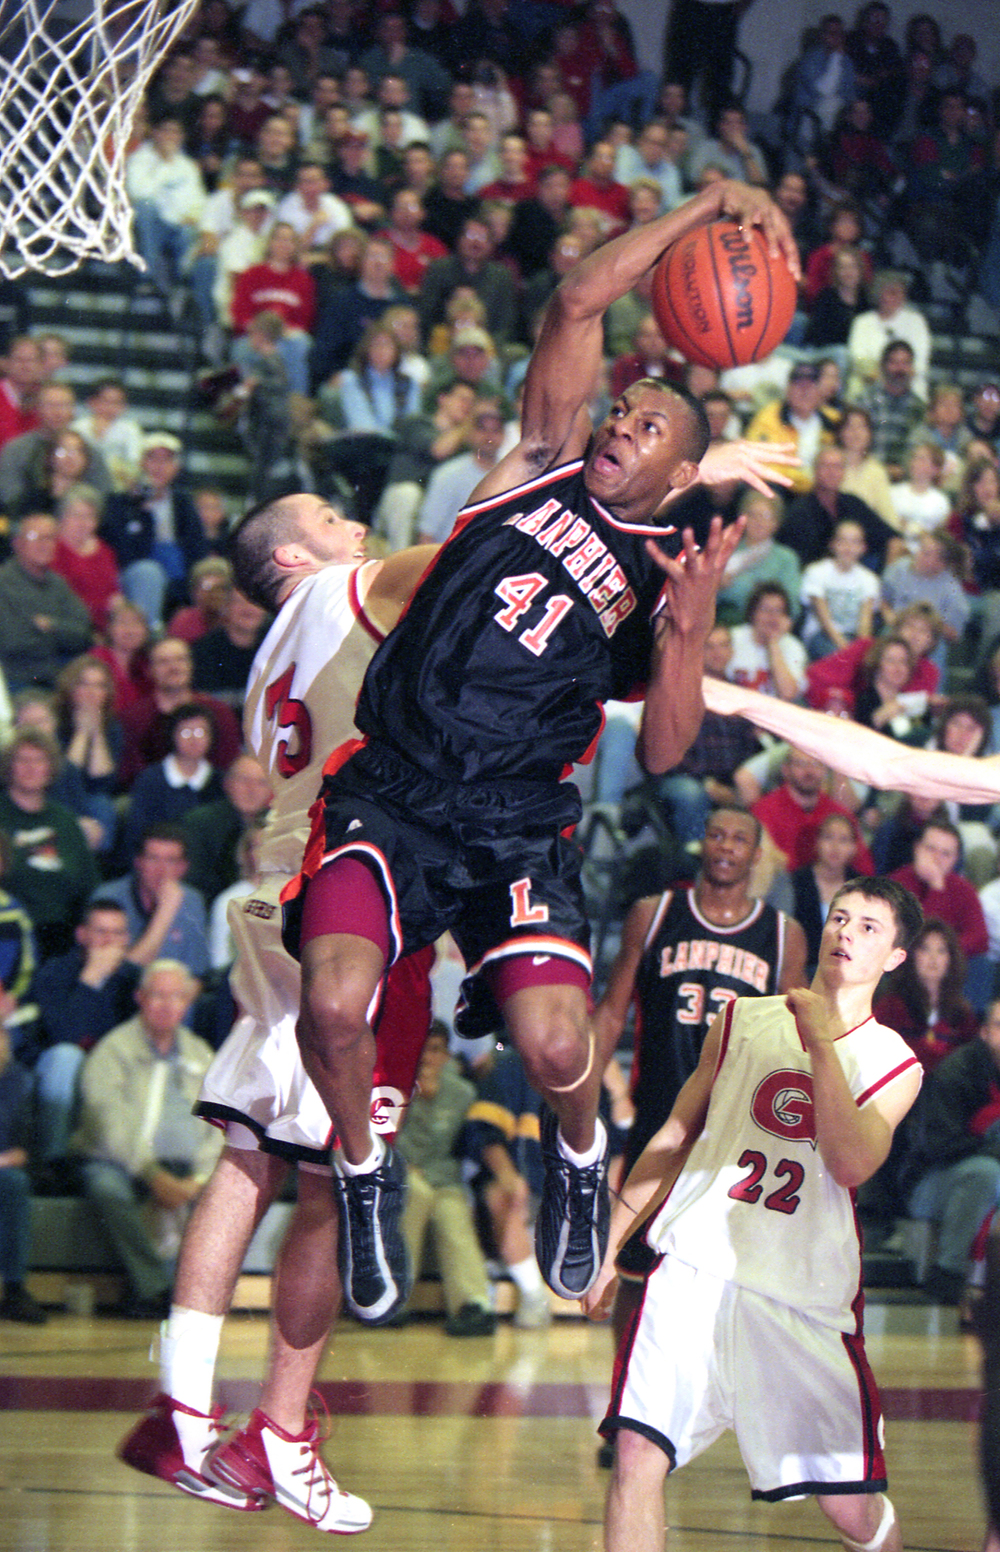 Lanphier High School's Andre Iguodala in a 2002 game against Glenwood. File/The State Journal-Register